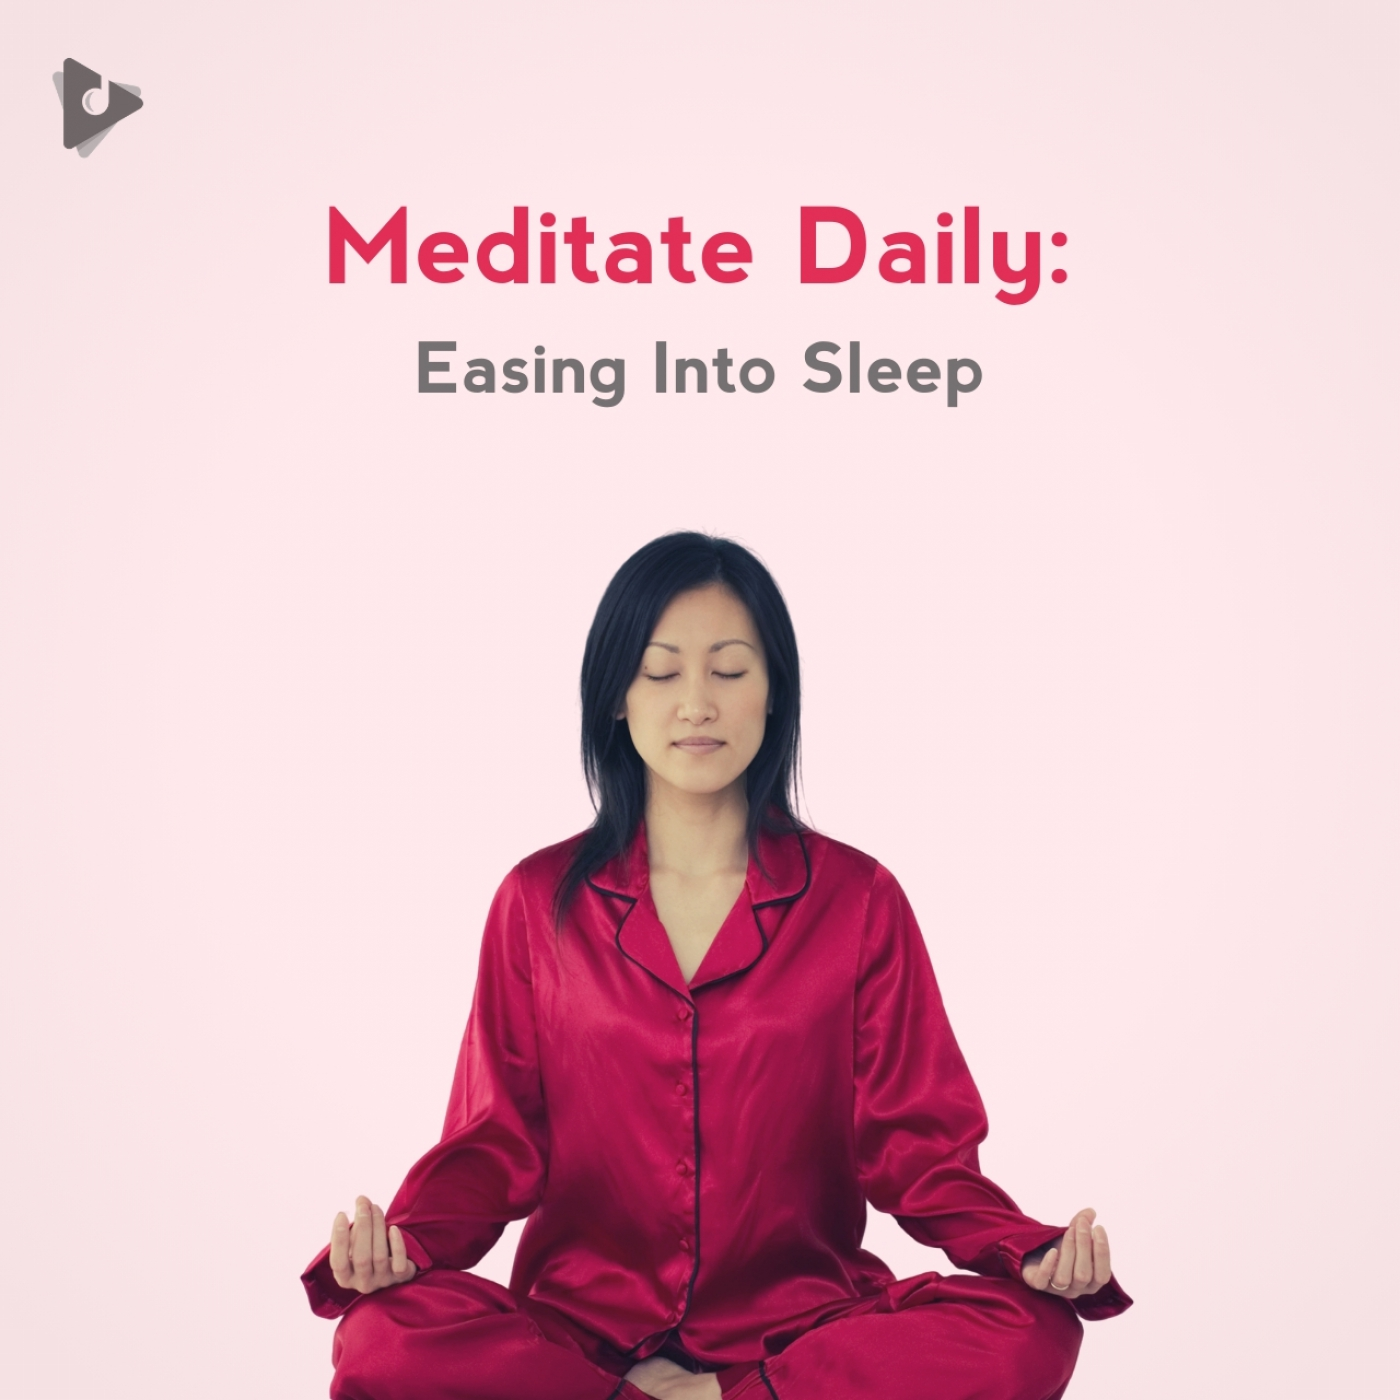 Meditate Daily: Easing Into Sleep